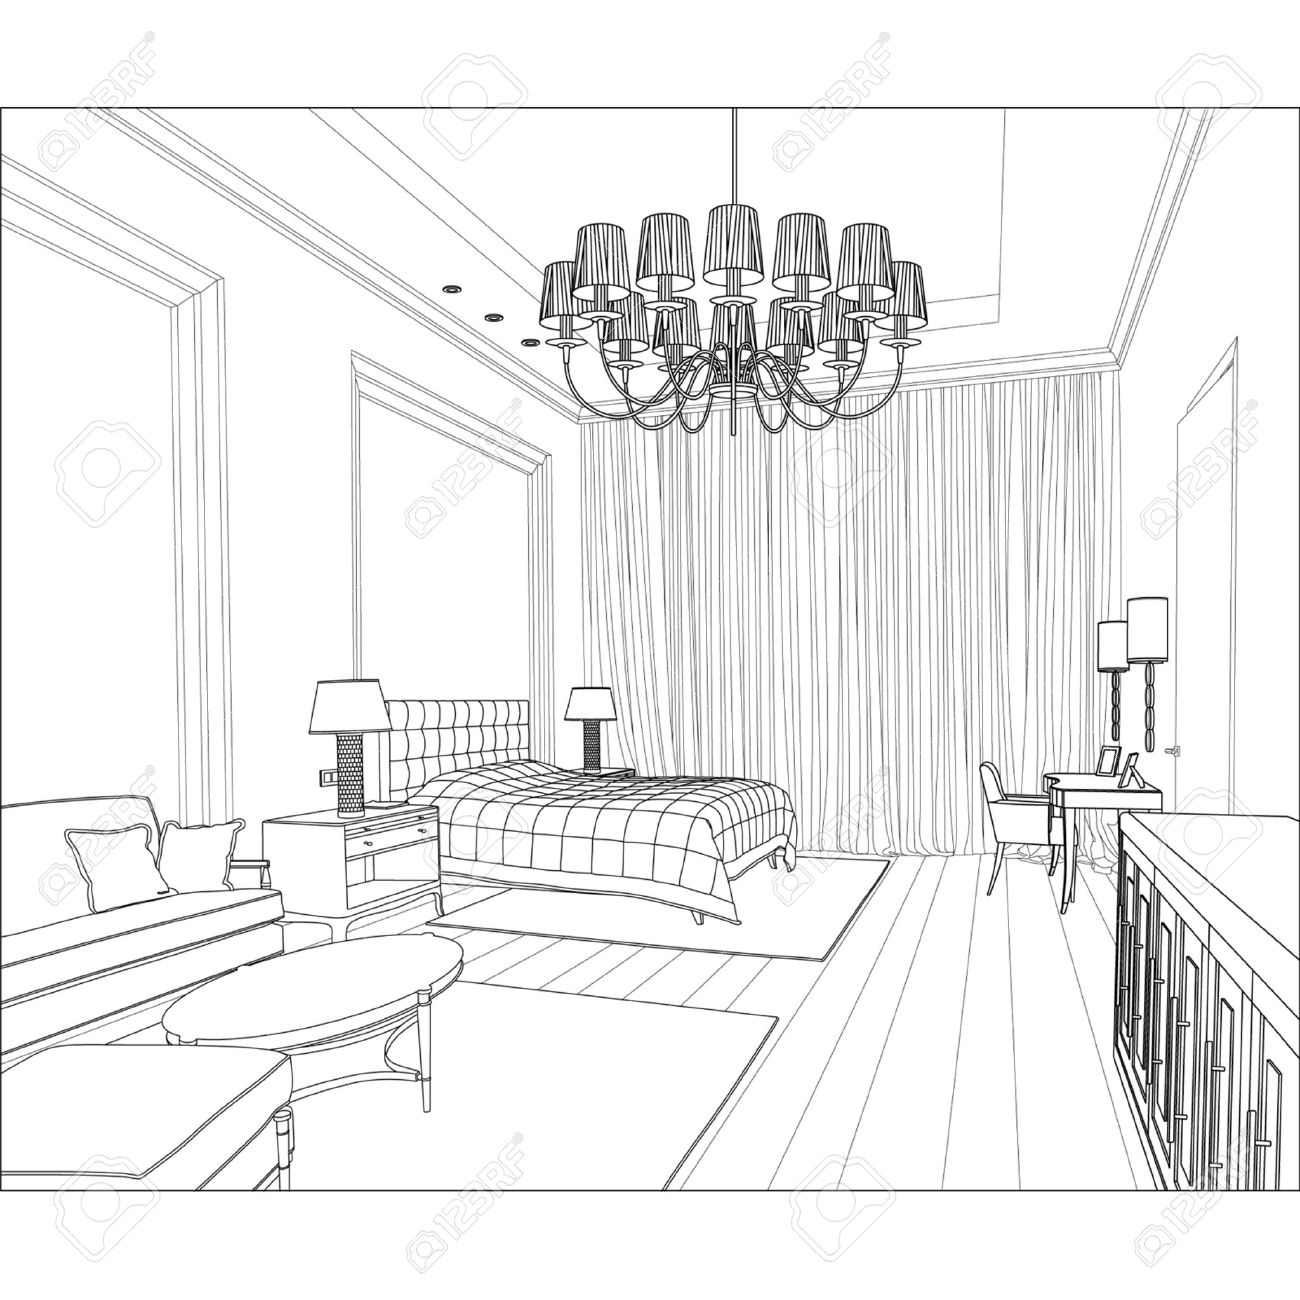 Living room clipart black and white - Living Editable Vector Illustration Of An Outline Sketch Of A Interior 3d Graphical Drawing Interior